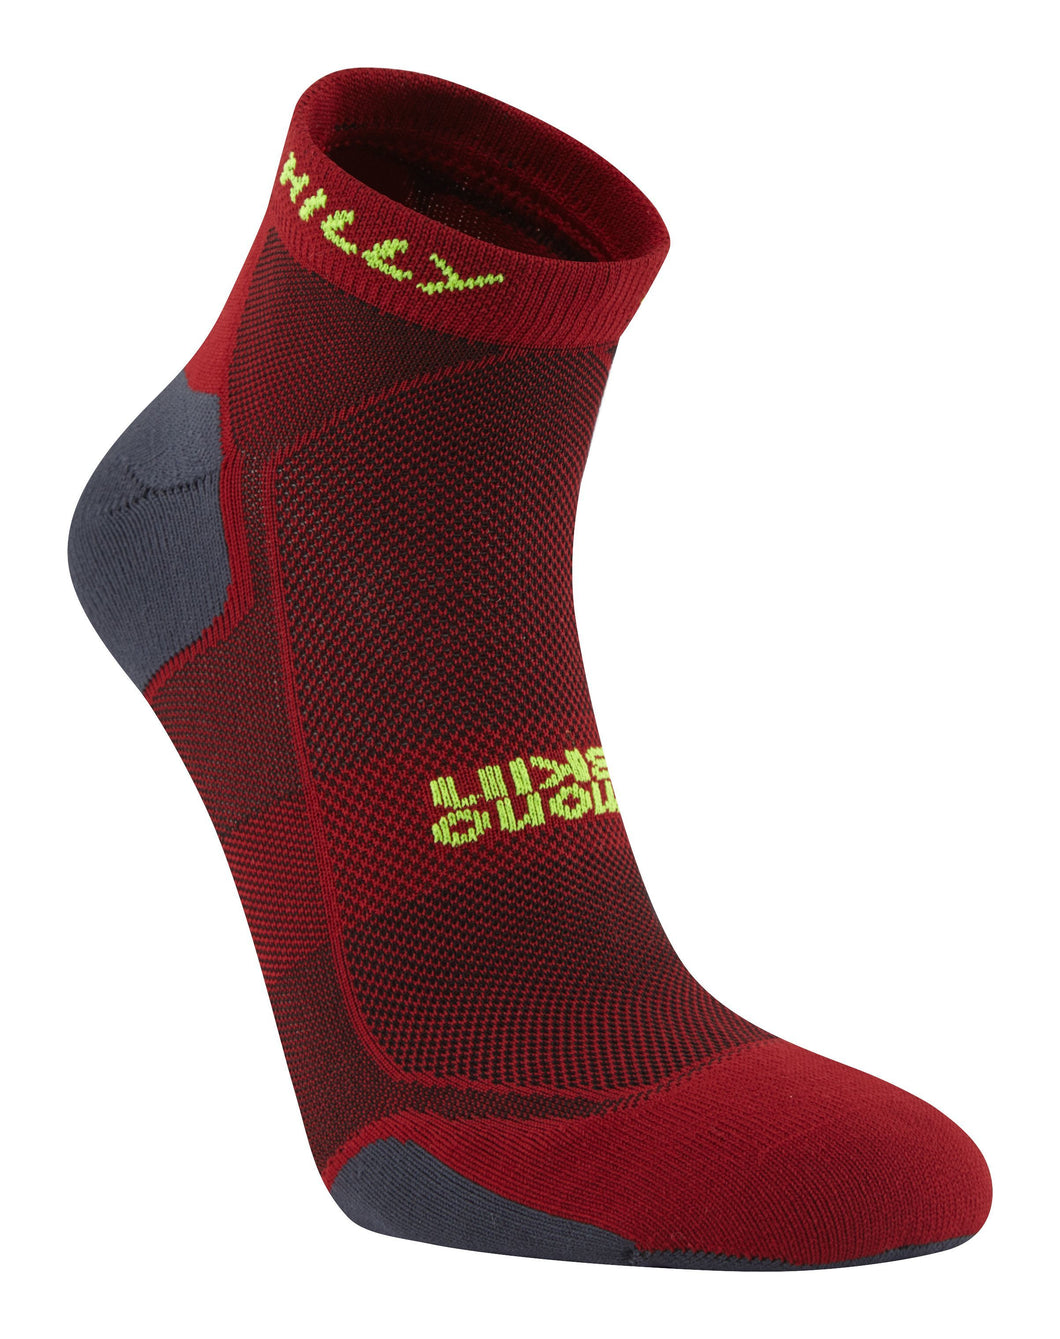 Hilly Pace Quarter Sock